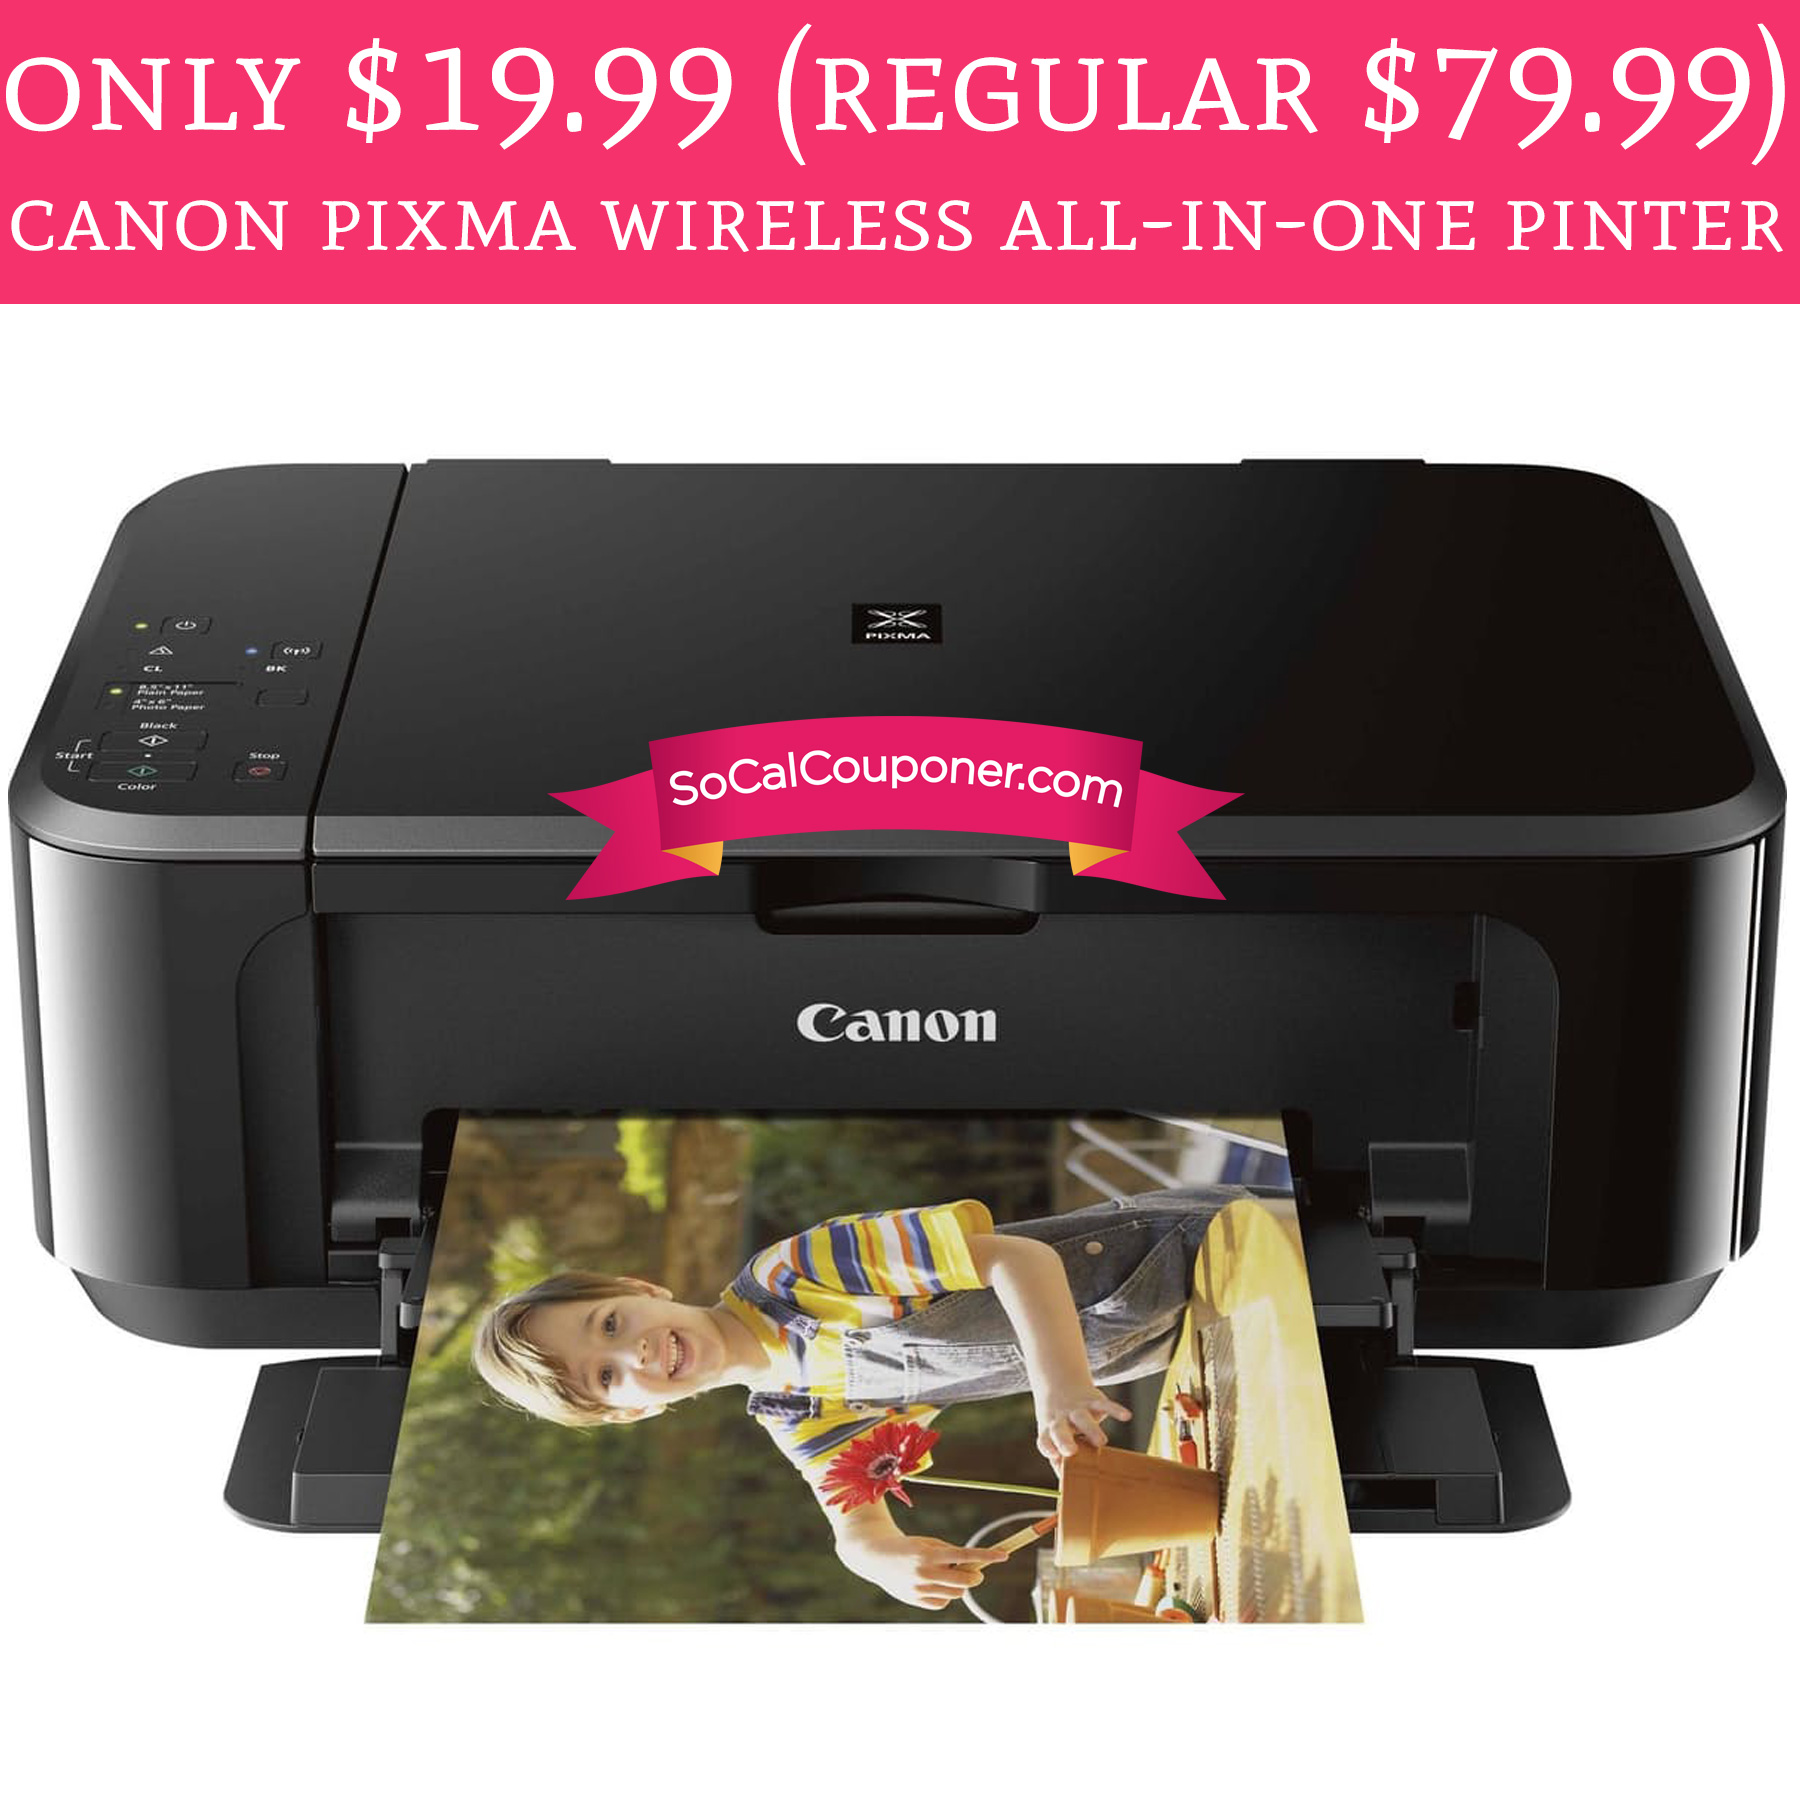 Beauteous Only Canon Pixma Wireless Deal Hunting Babe Only Canon Pixma Wireless All Walgreens Printer Ink Refill Canon Walgreens Printer Cartridge Refill Locations dpreview Walgreens Printer Ink